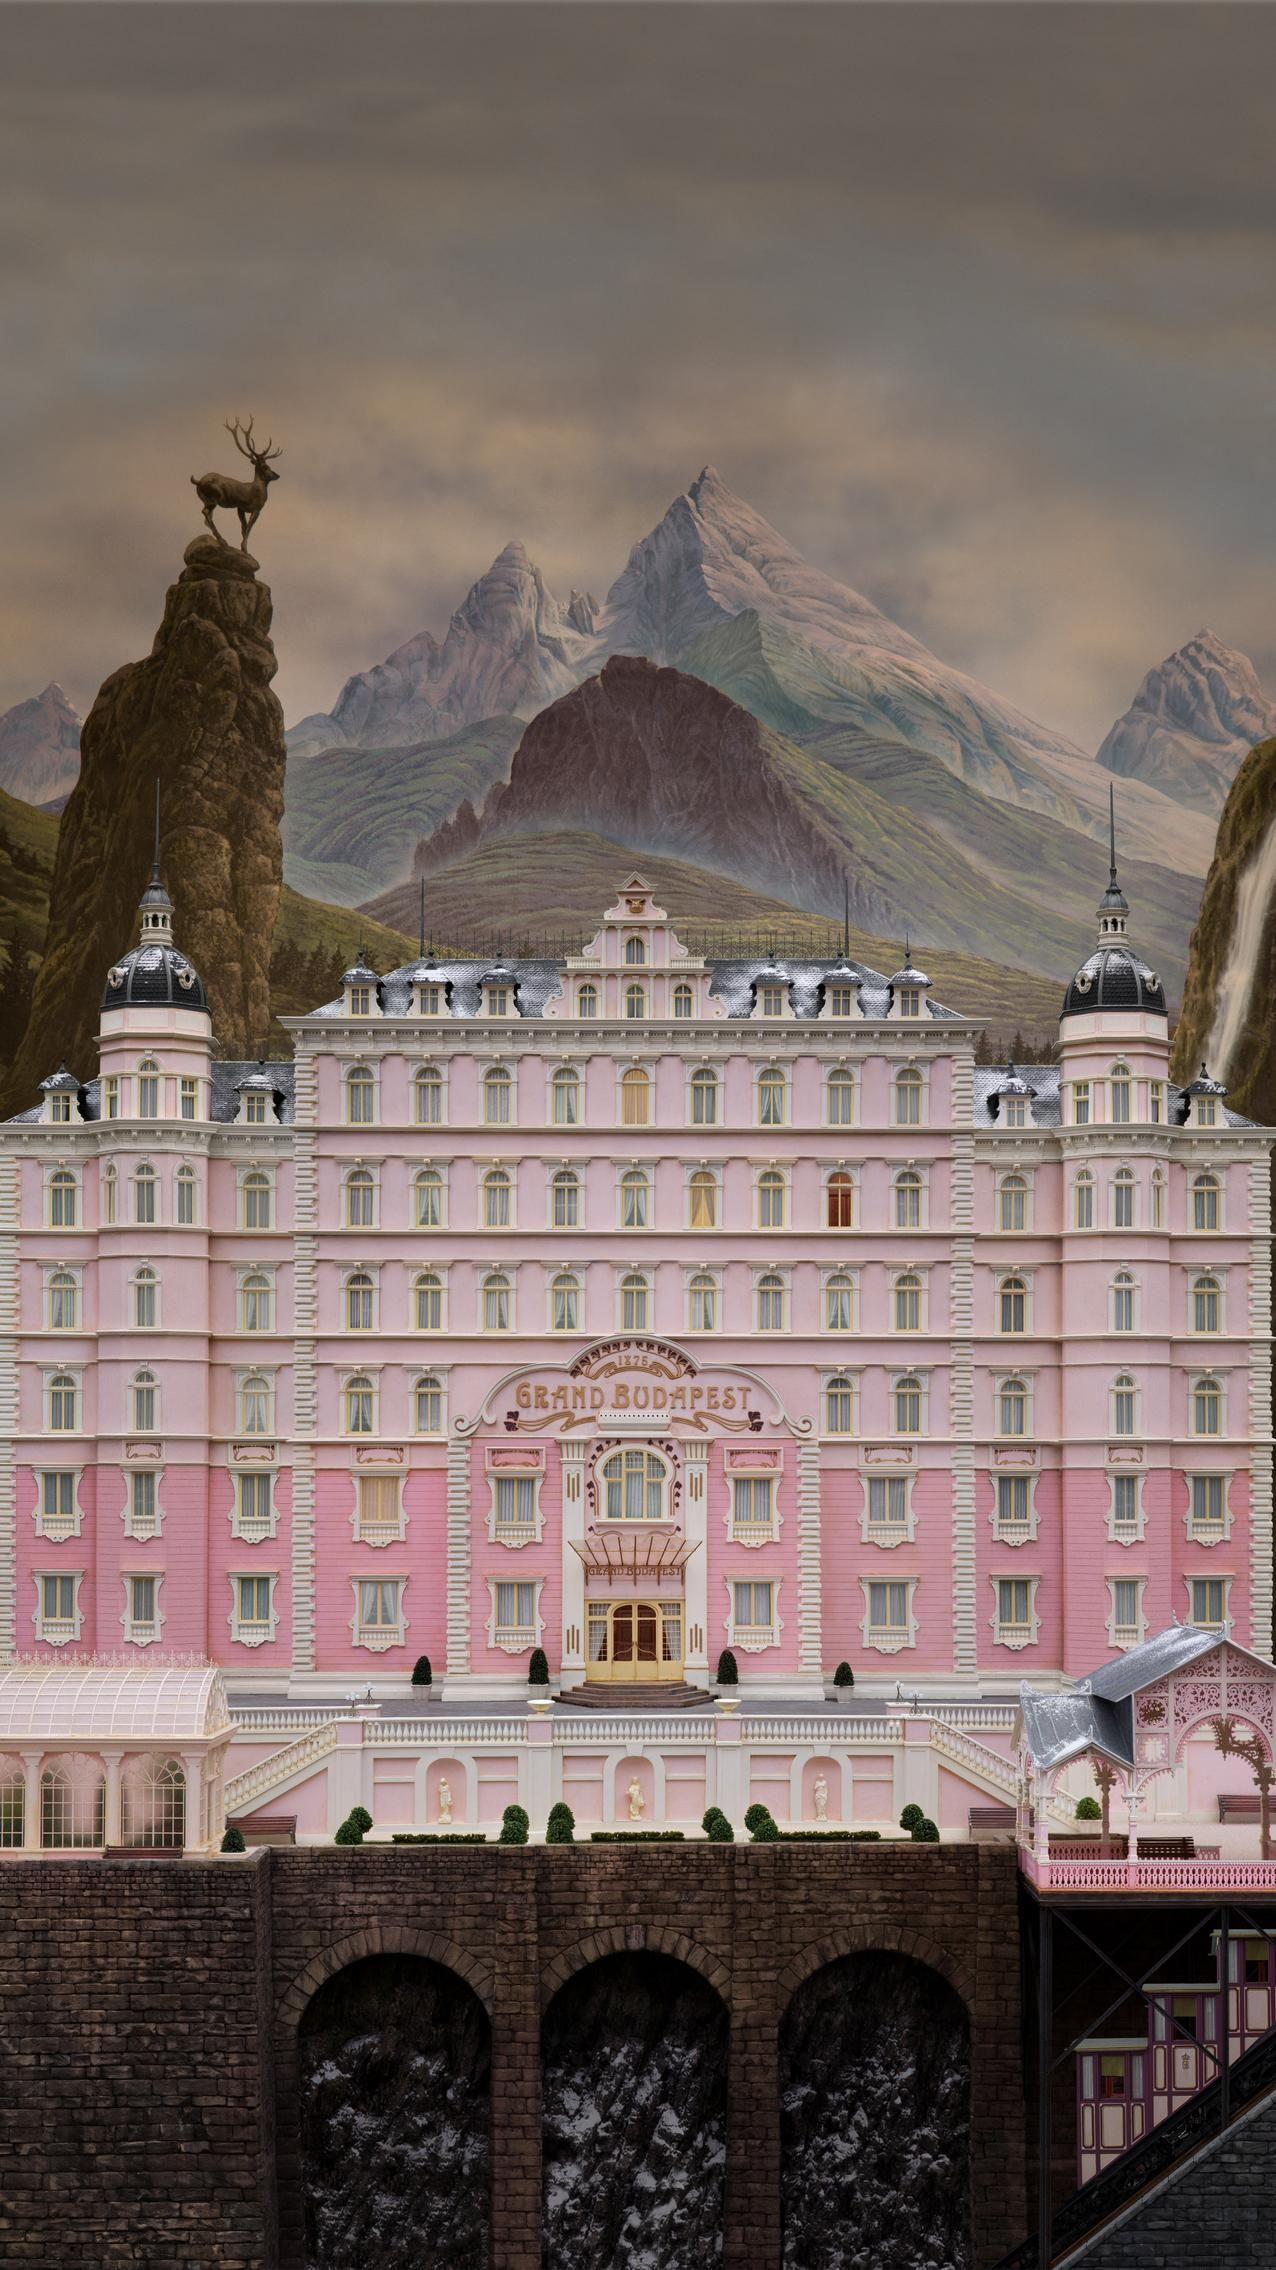 Toy Story 4 2019 Phone Wallpaper in 2020 Grand budapest hotel 1276x2270